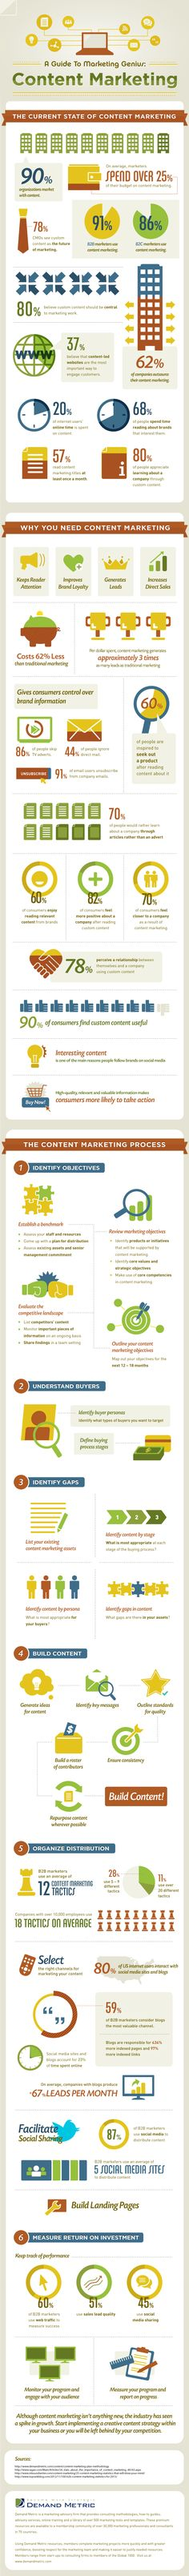 Infographic: 25% of marketing budgets spent on content marketing